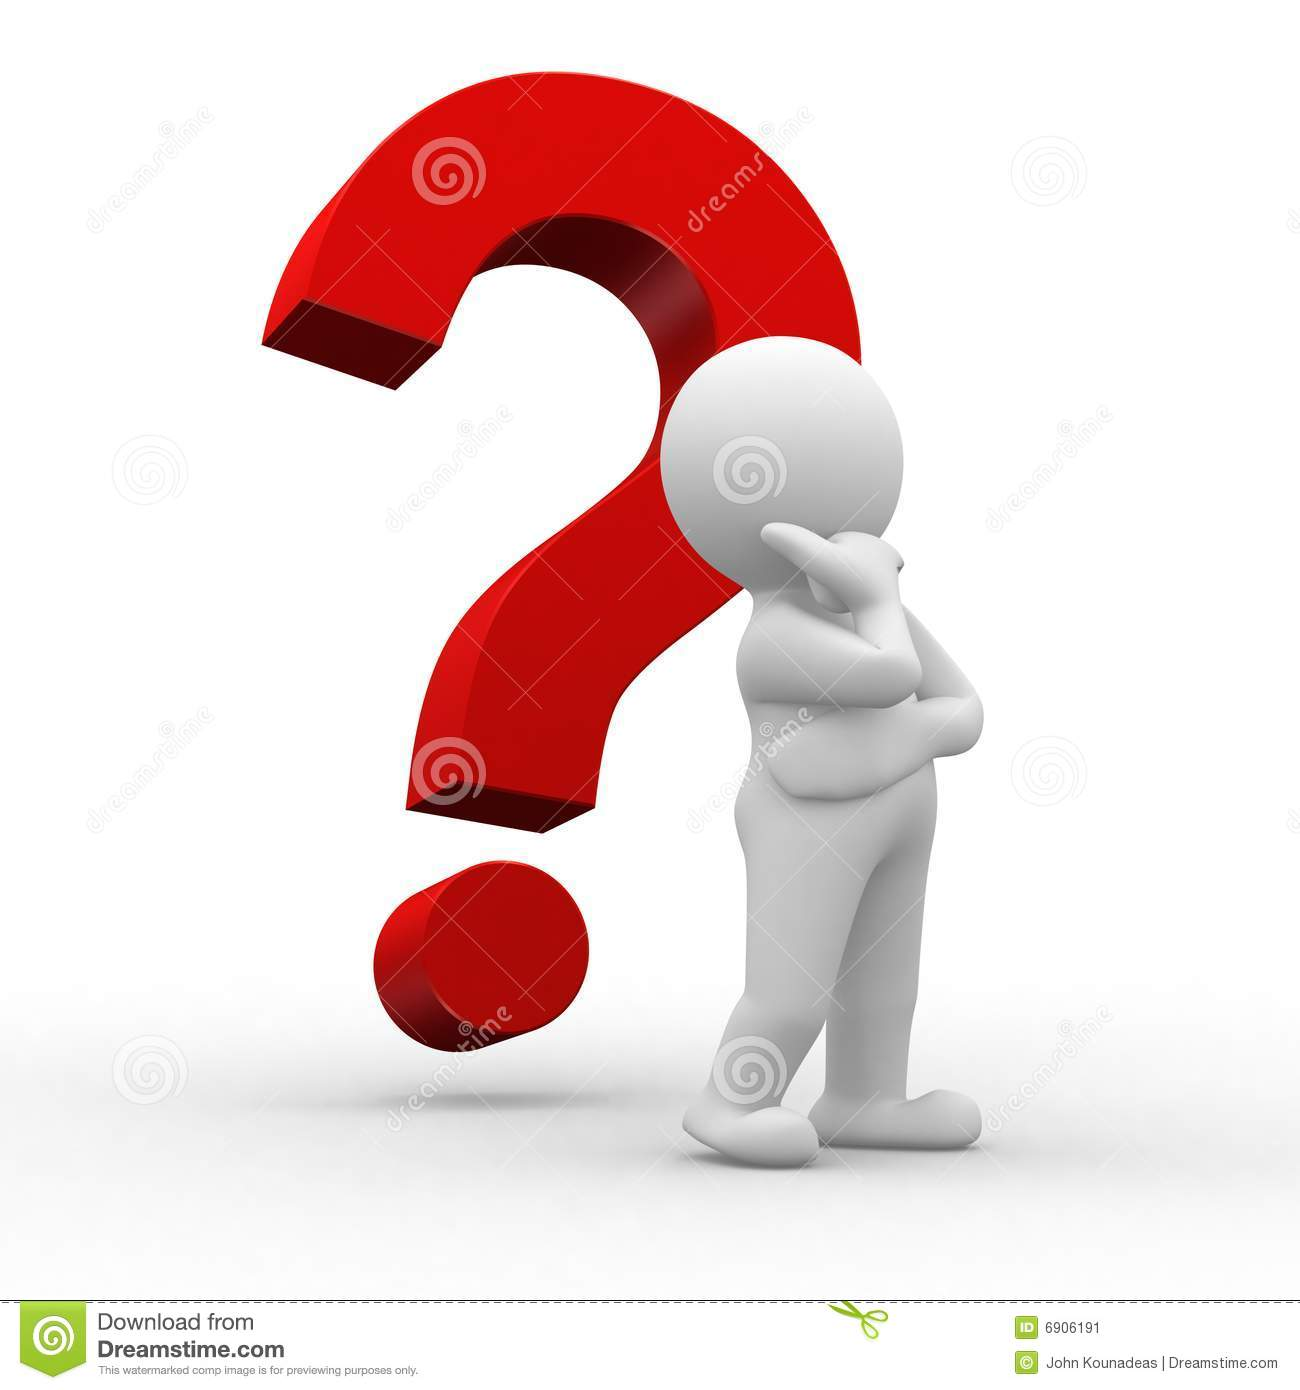 question stock image question mark stock image image 6906191 1929